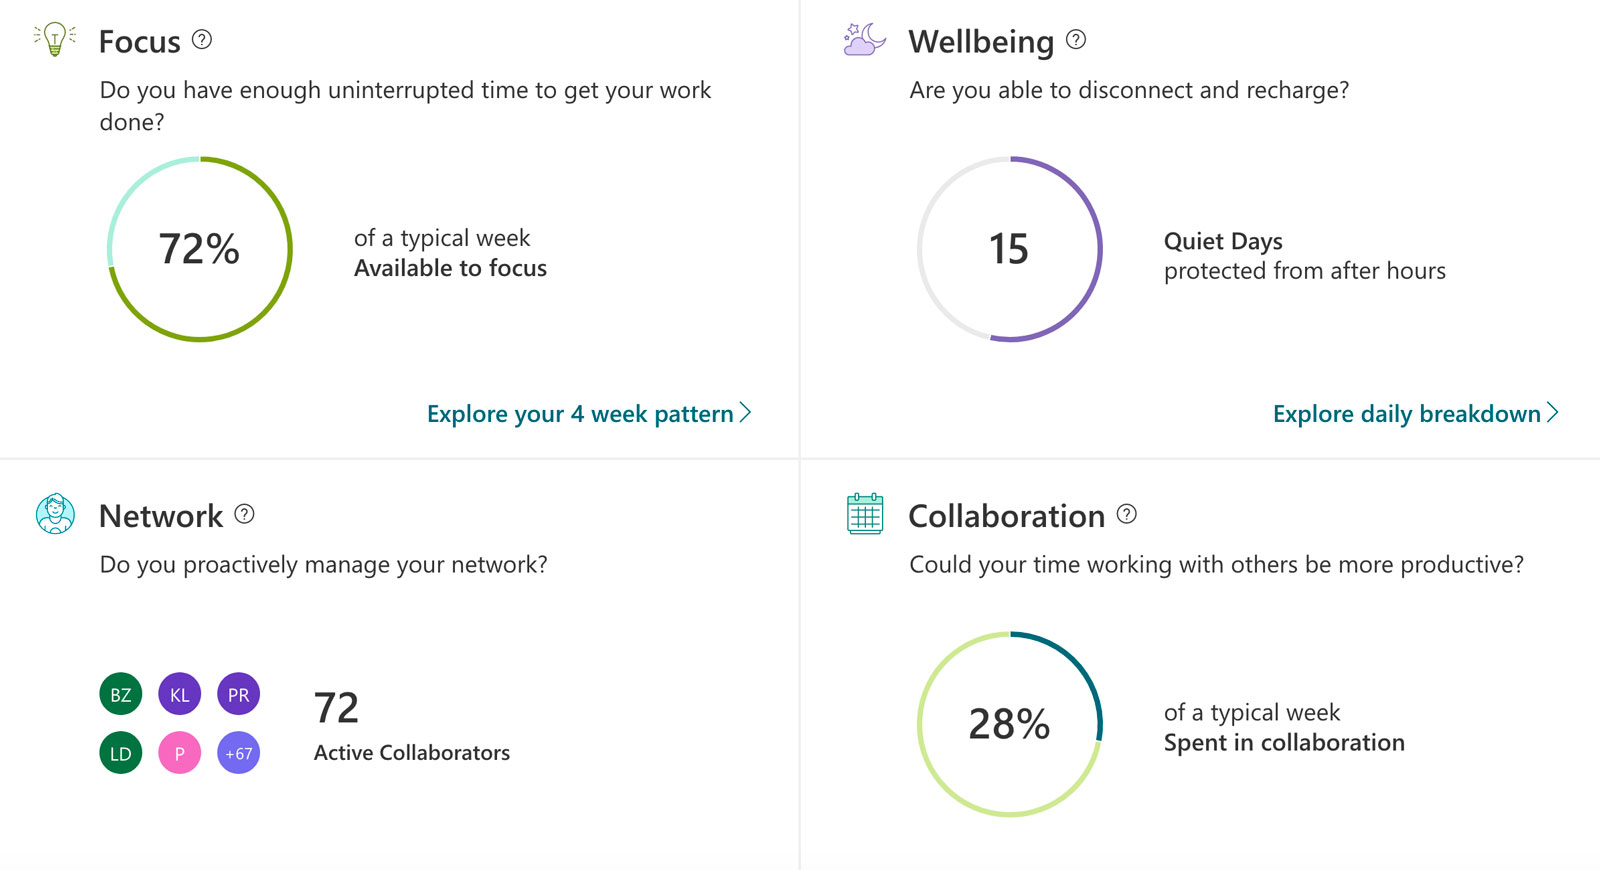 MyAnalytics dashboard showing an overview of Focus, Wellbeing, Network and Collaboration.